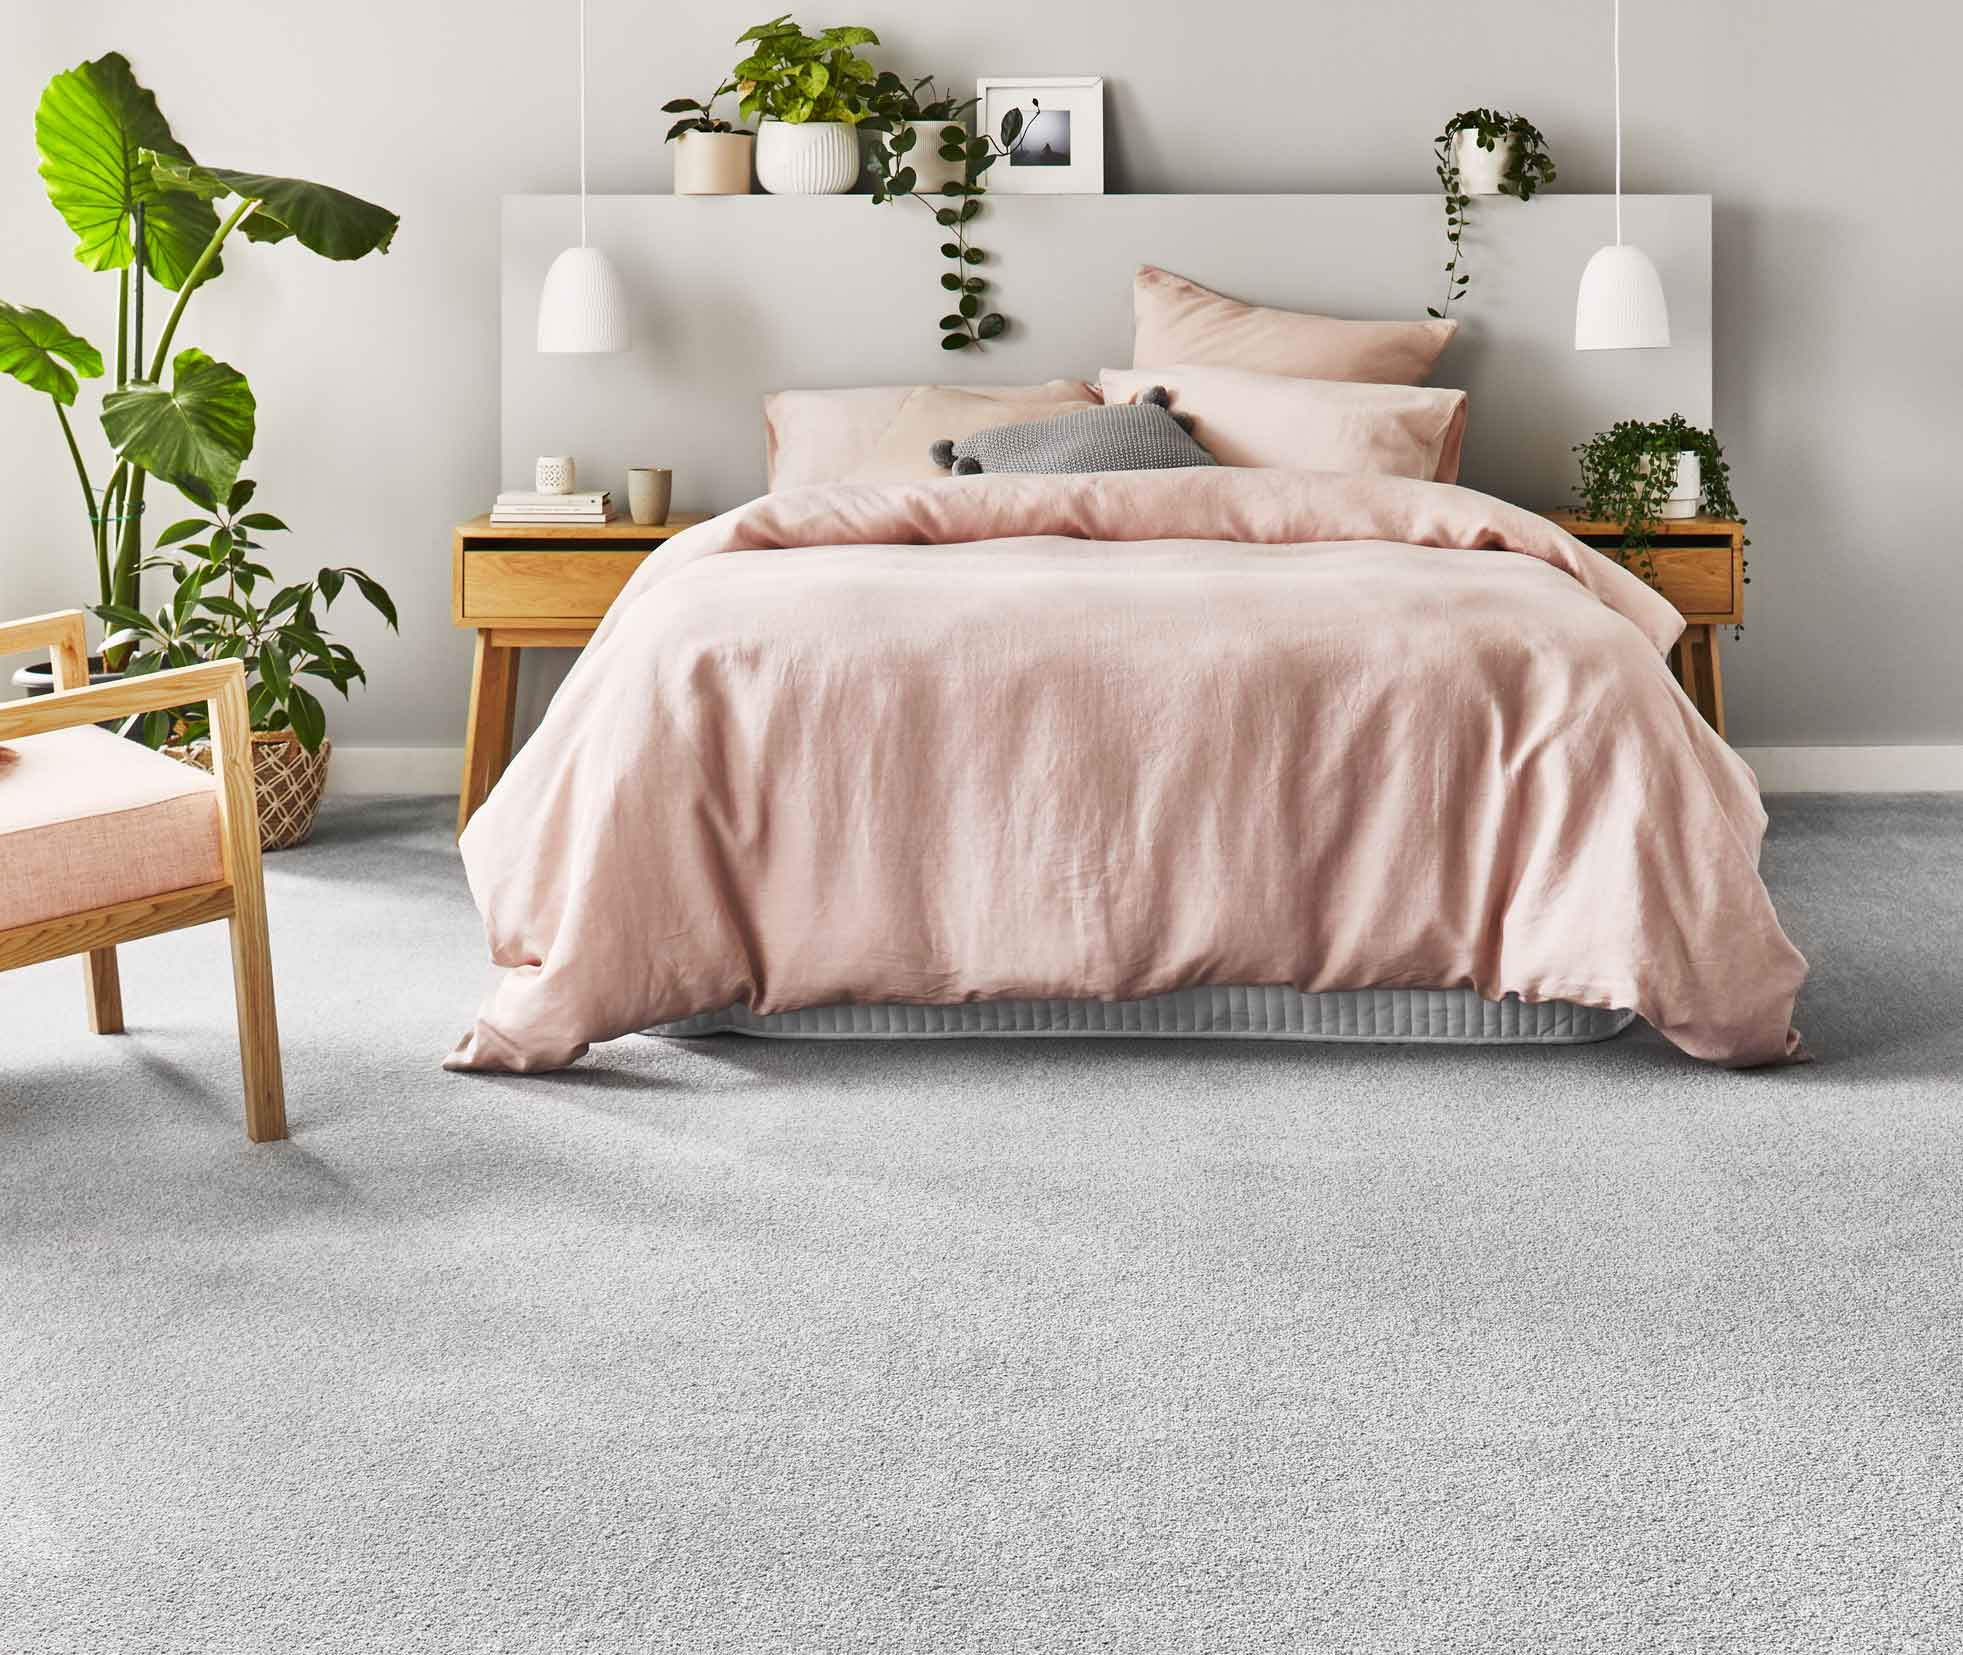 Andros carpet flooring swatch in village path - lifestyle bedroom